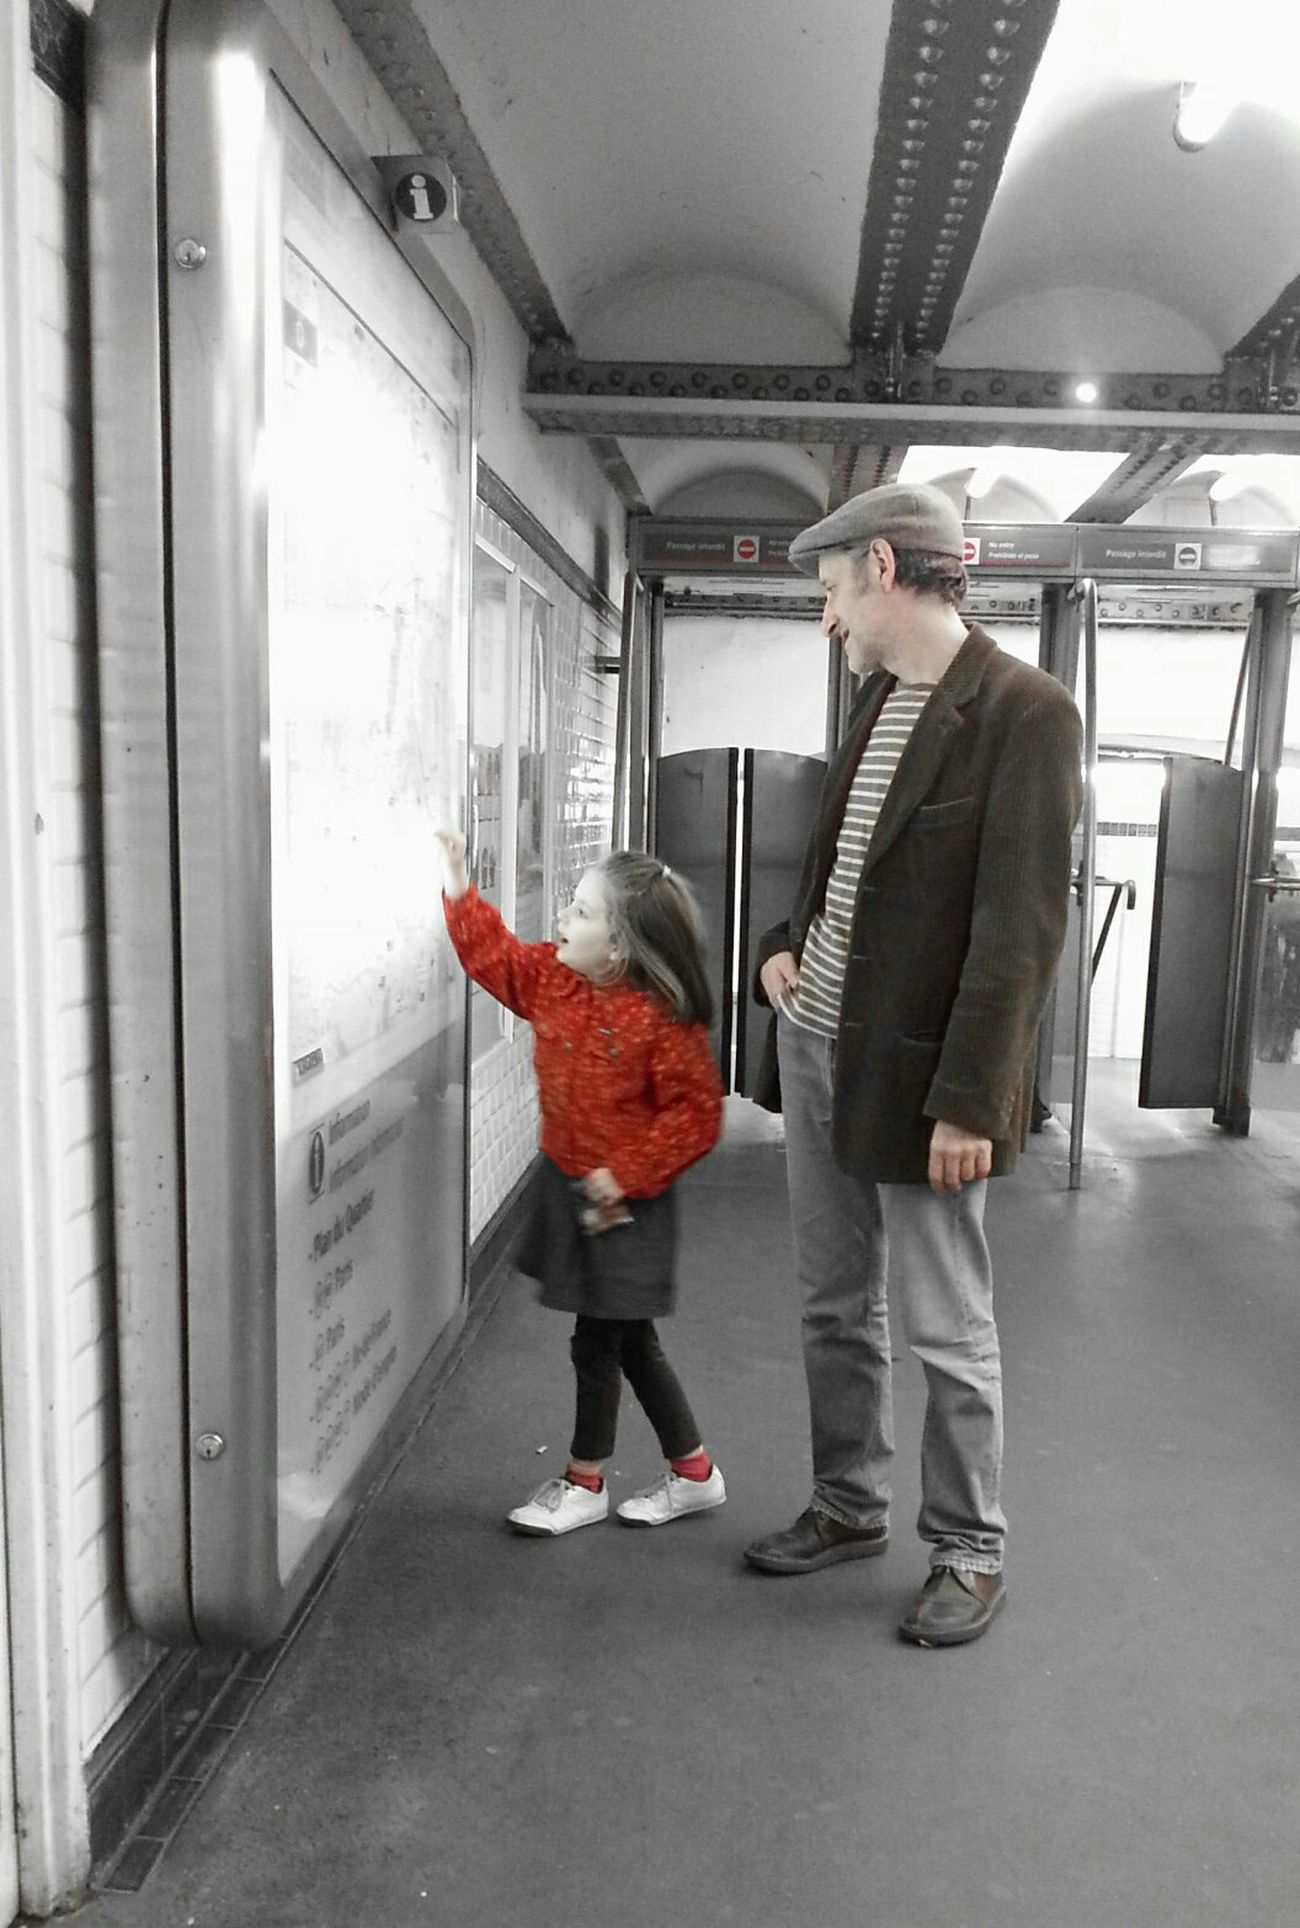 Subway Metro Paris Color Splash De Père En Fille.... RePicture Love